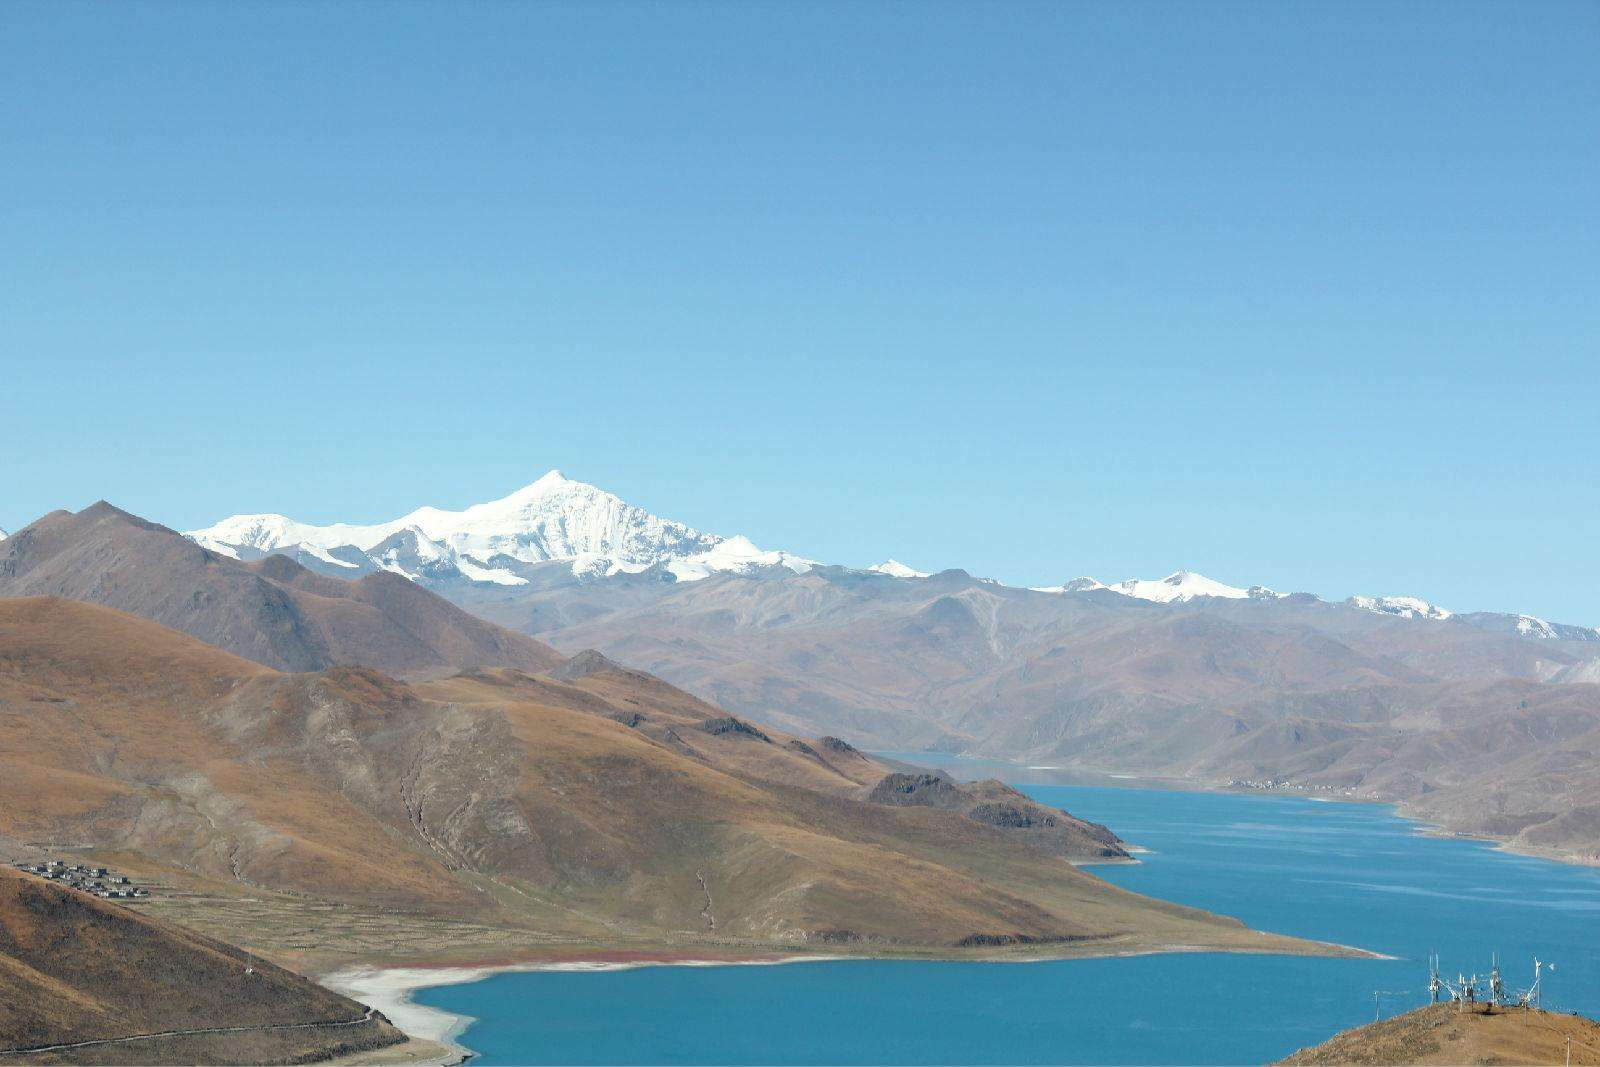 At Everest base camp, you can do a trekking around this bbeautiful lake.